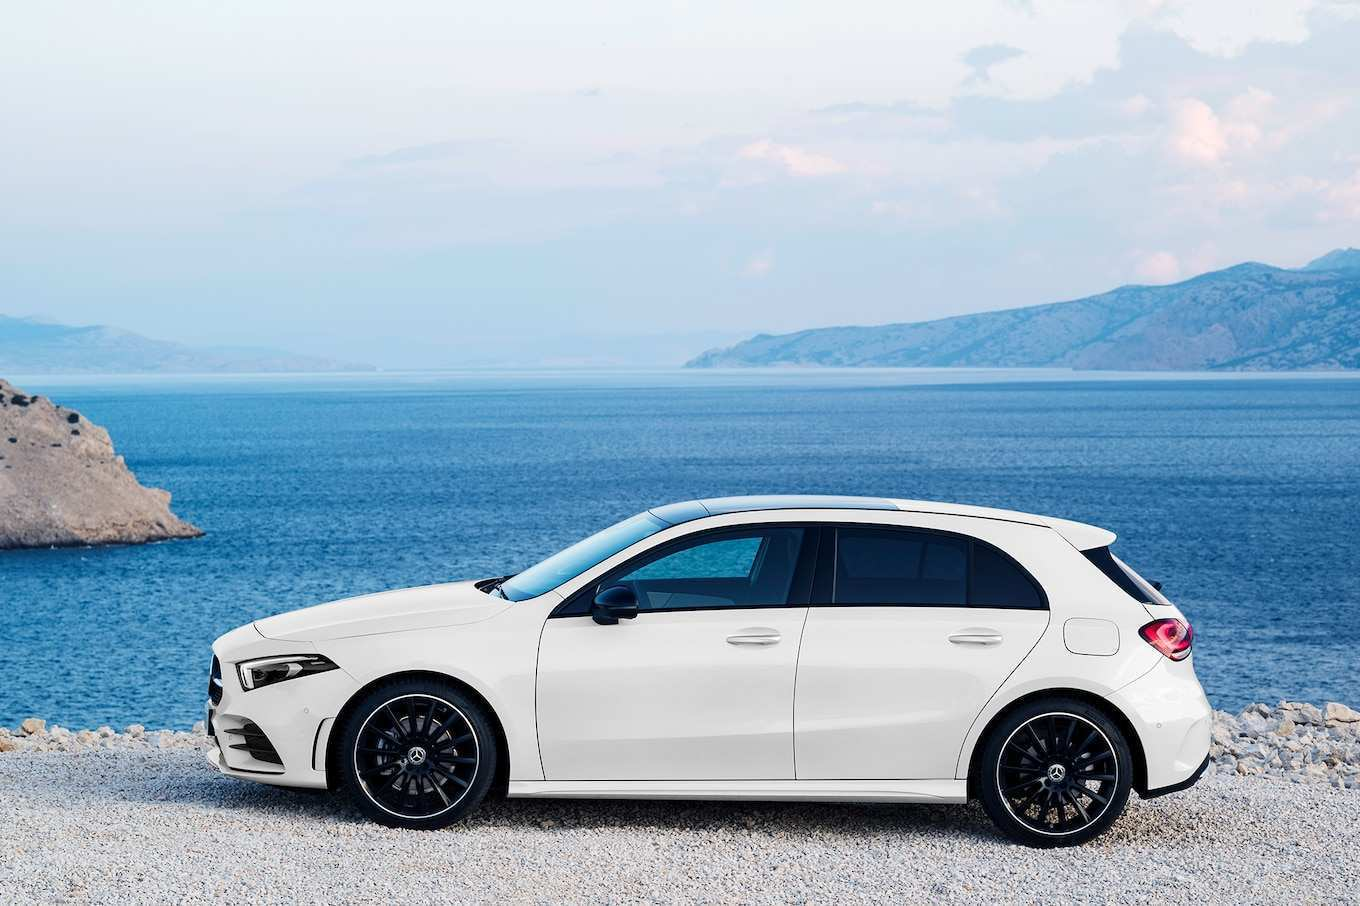 92 Great 2019 Mercedes Hatchback Photos for 2019 Mercedes Hatchback